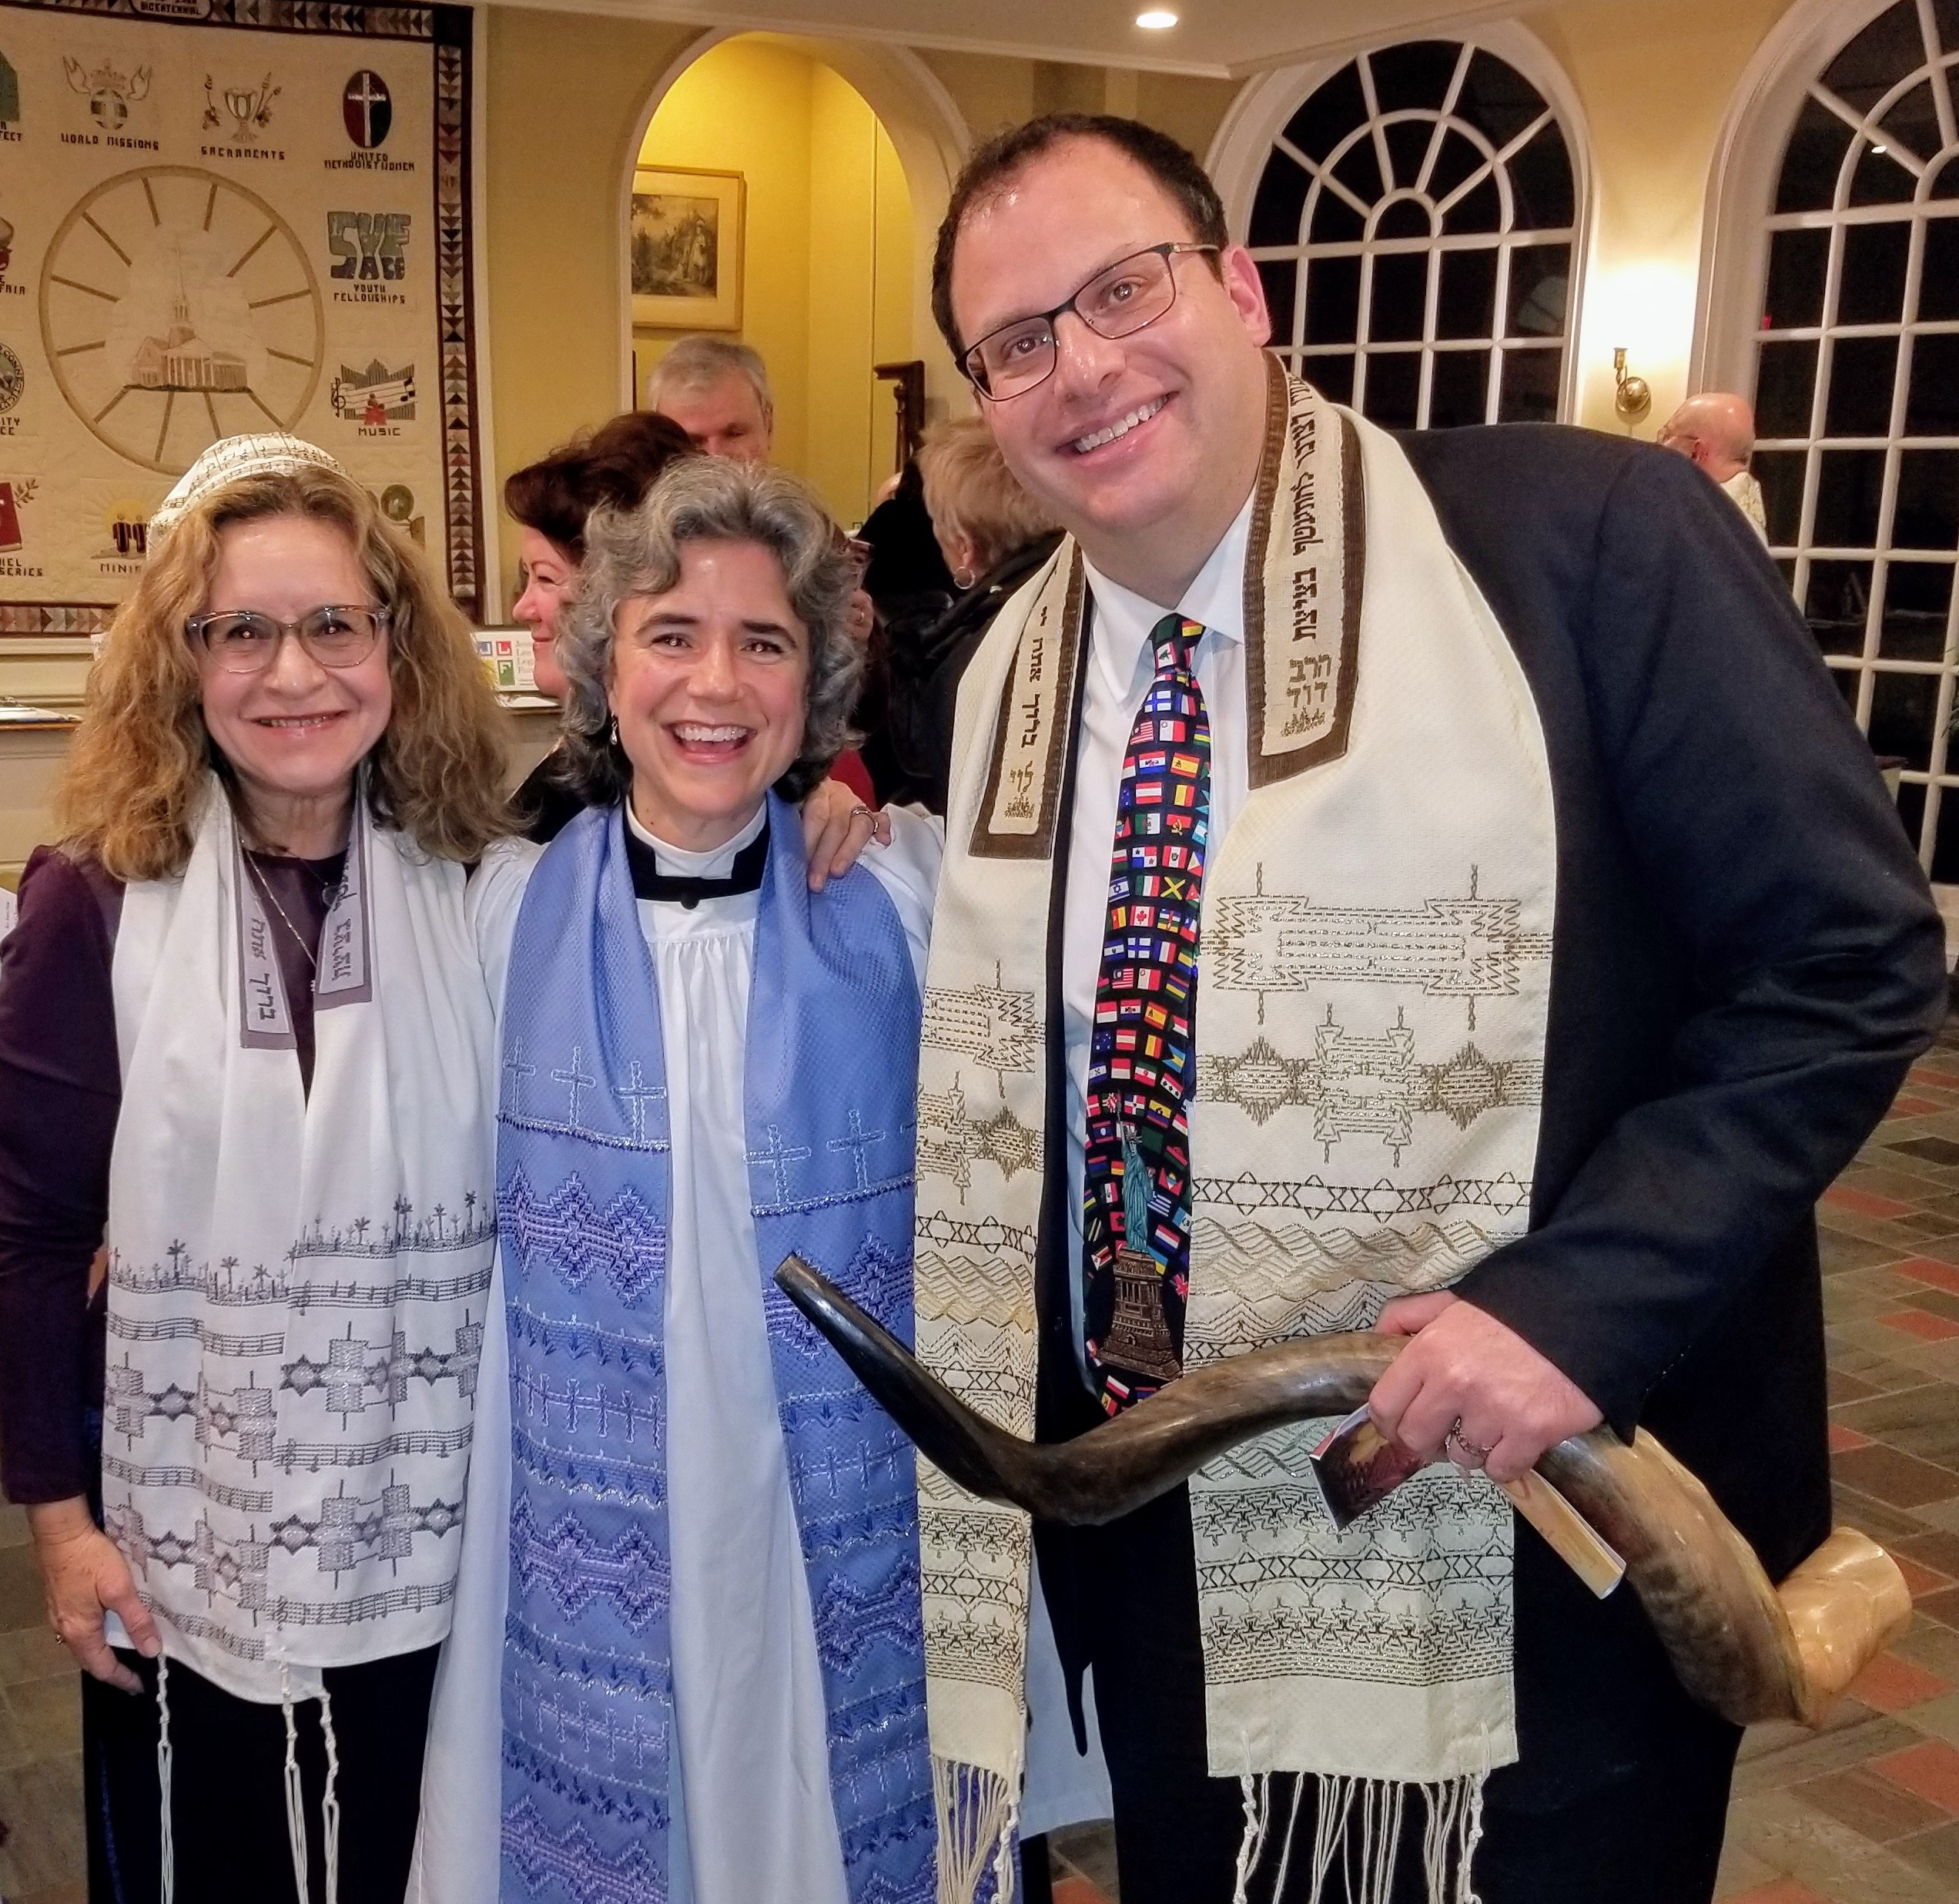 The Rev. Whitney Altopp (c) of St. Stephen's Episcopal Church is flanked by Cantor Deborah Katchko-Gray and Rabbi David Reiner of Congregation Shir Shalom of Westchester and Fairfield Counties. The three form the leadership of the Ridgefield Clergy Assocation.